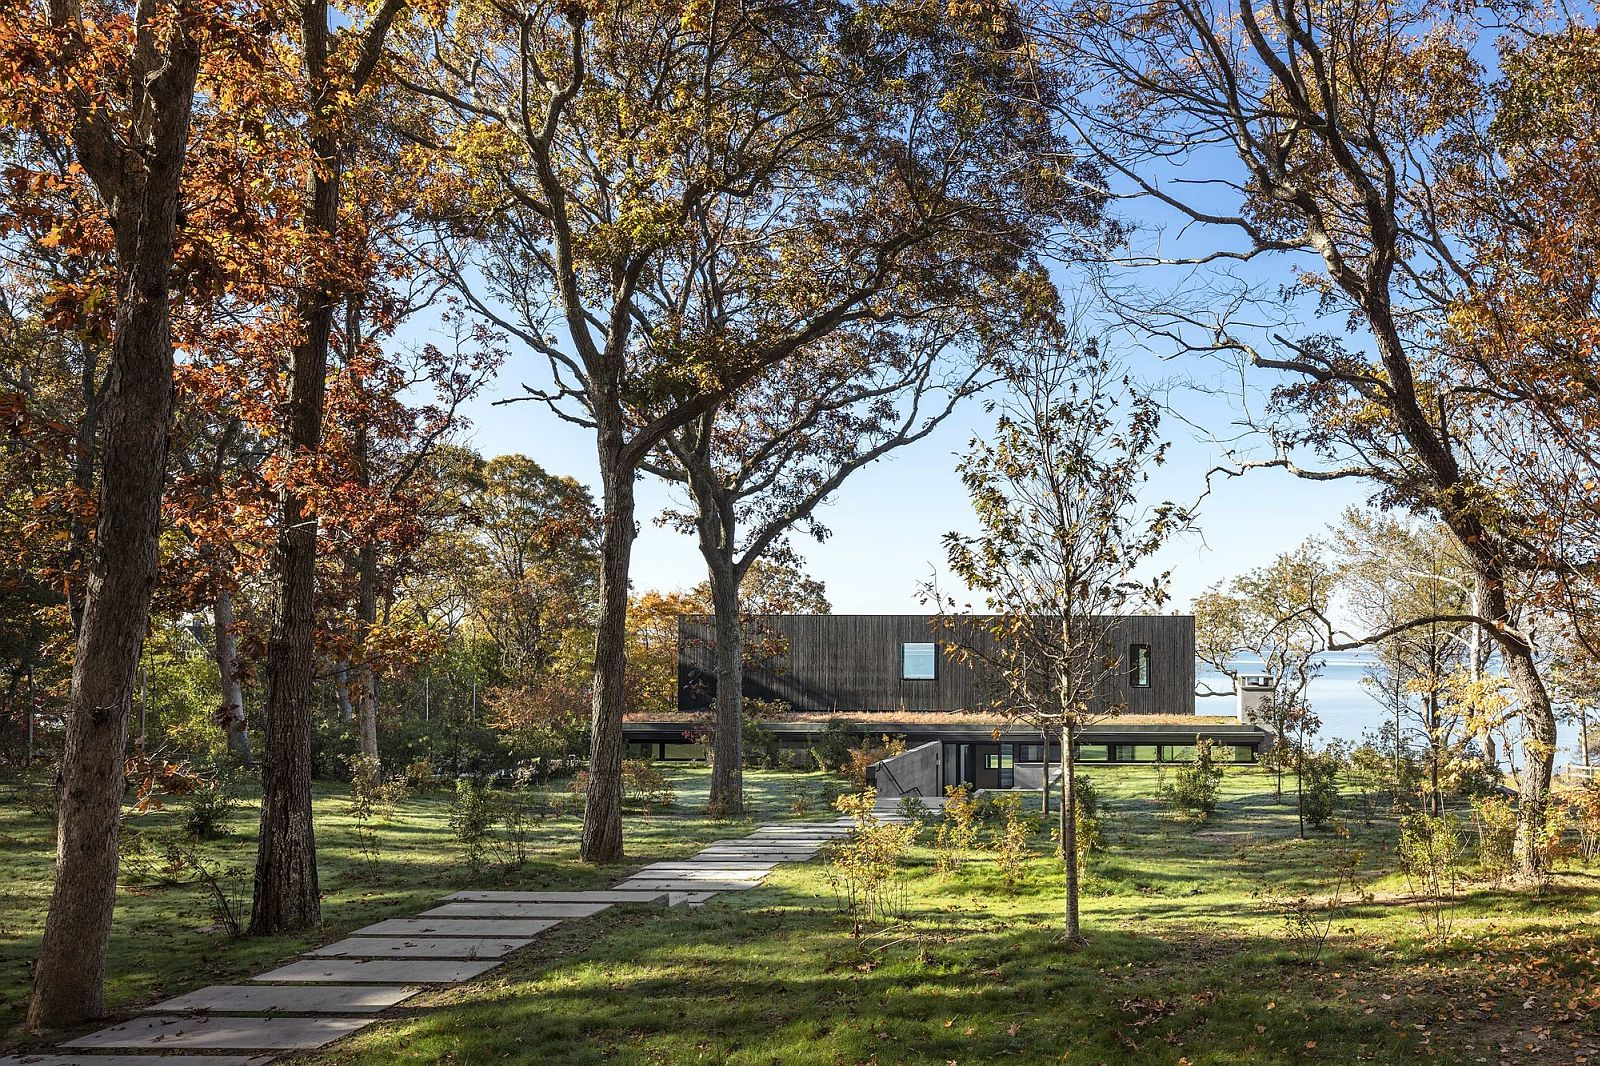 Woods-surrounding-the-Shore-House-leading-to-lovely-Bay-area